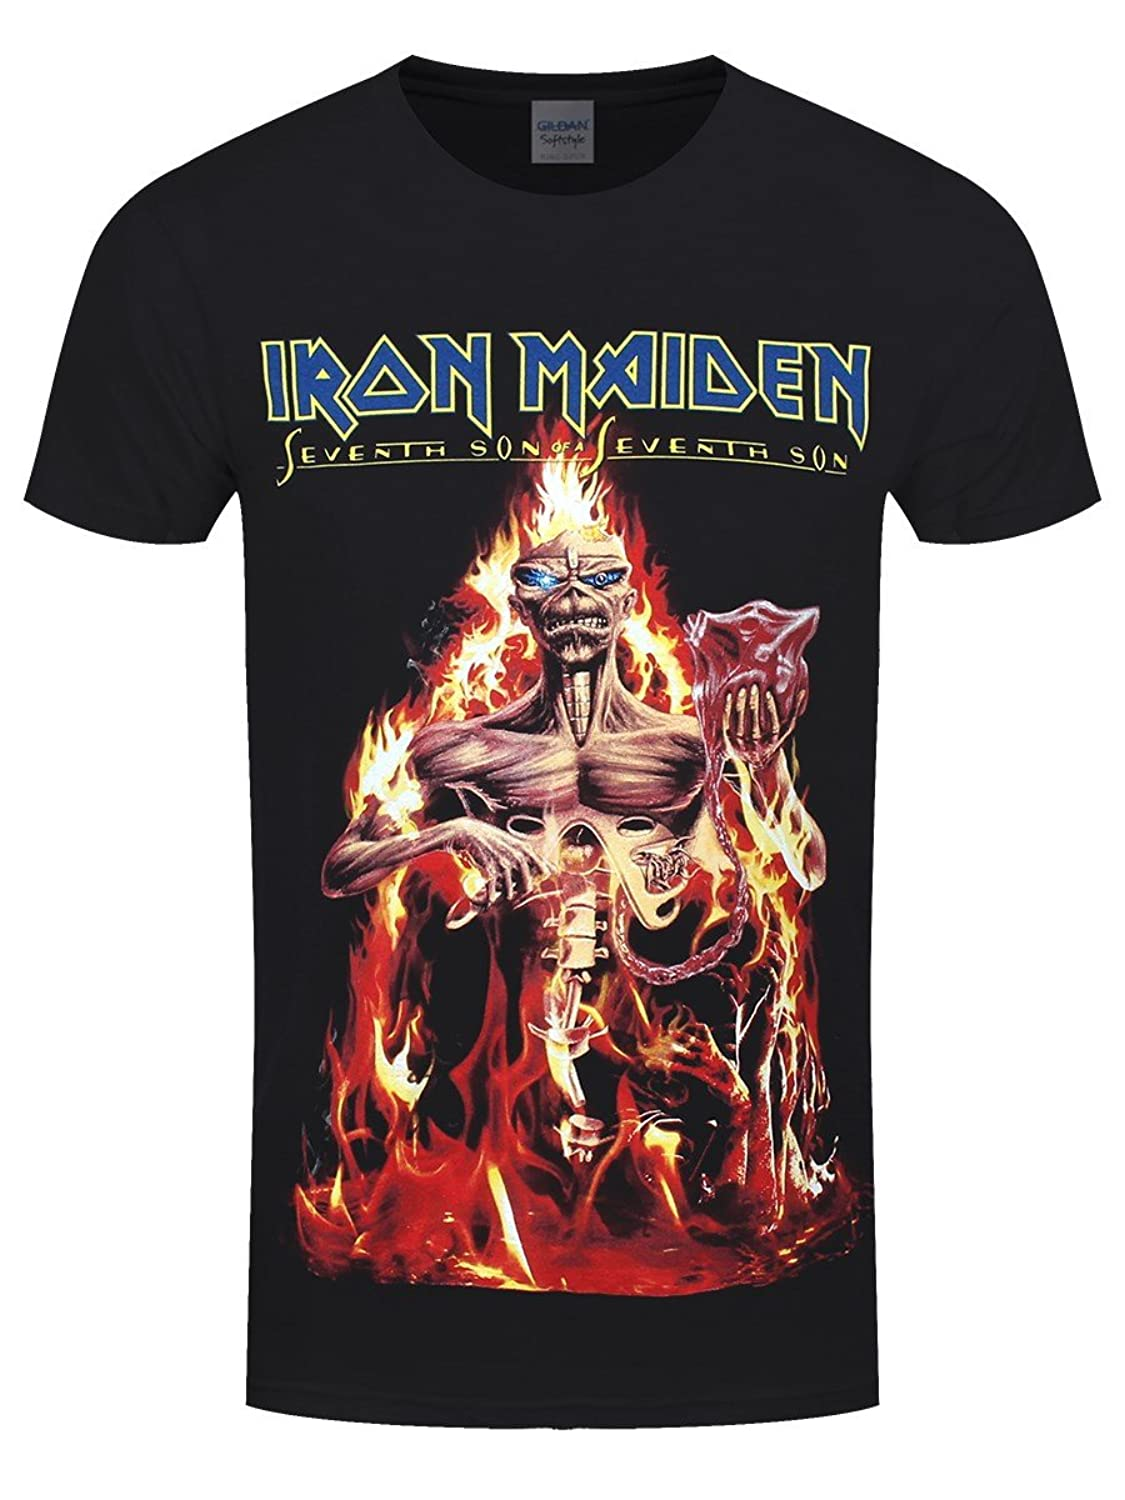 ea9eae7a1548 Top21: Unknown Men\'s Iron Maiden Seventh Son T-Shirt